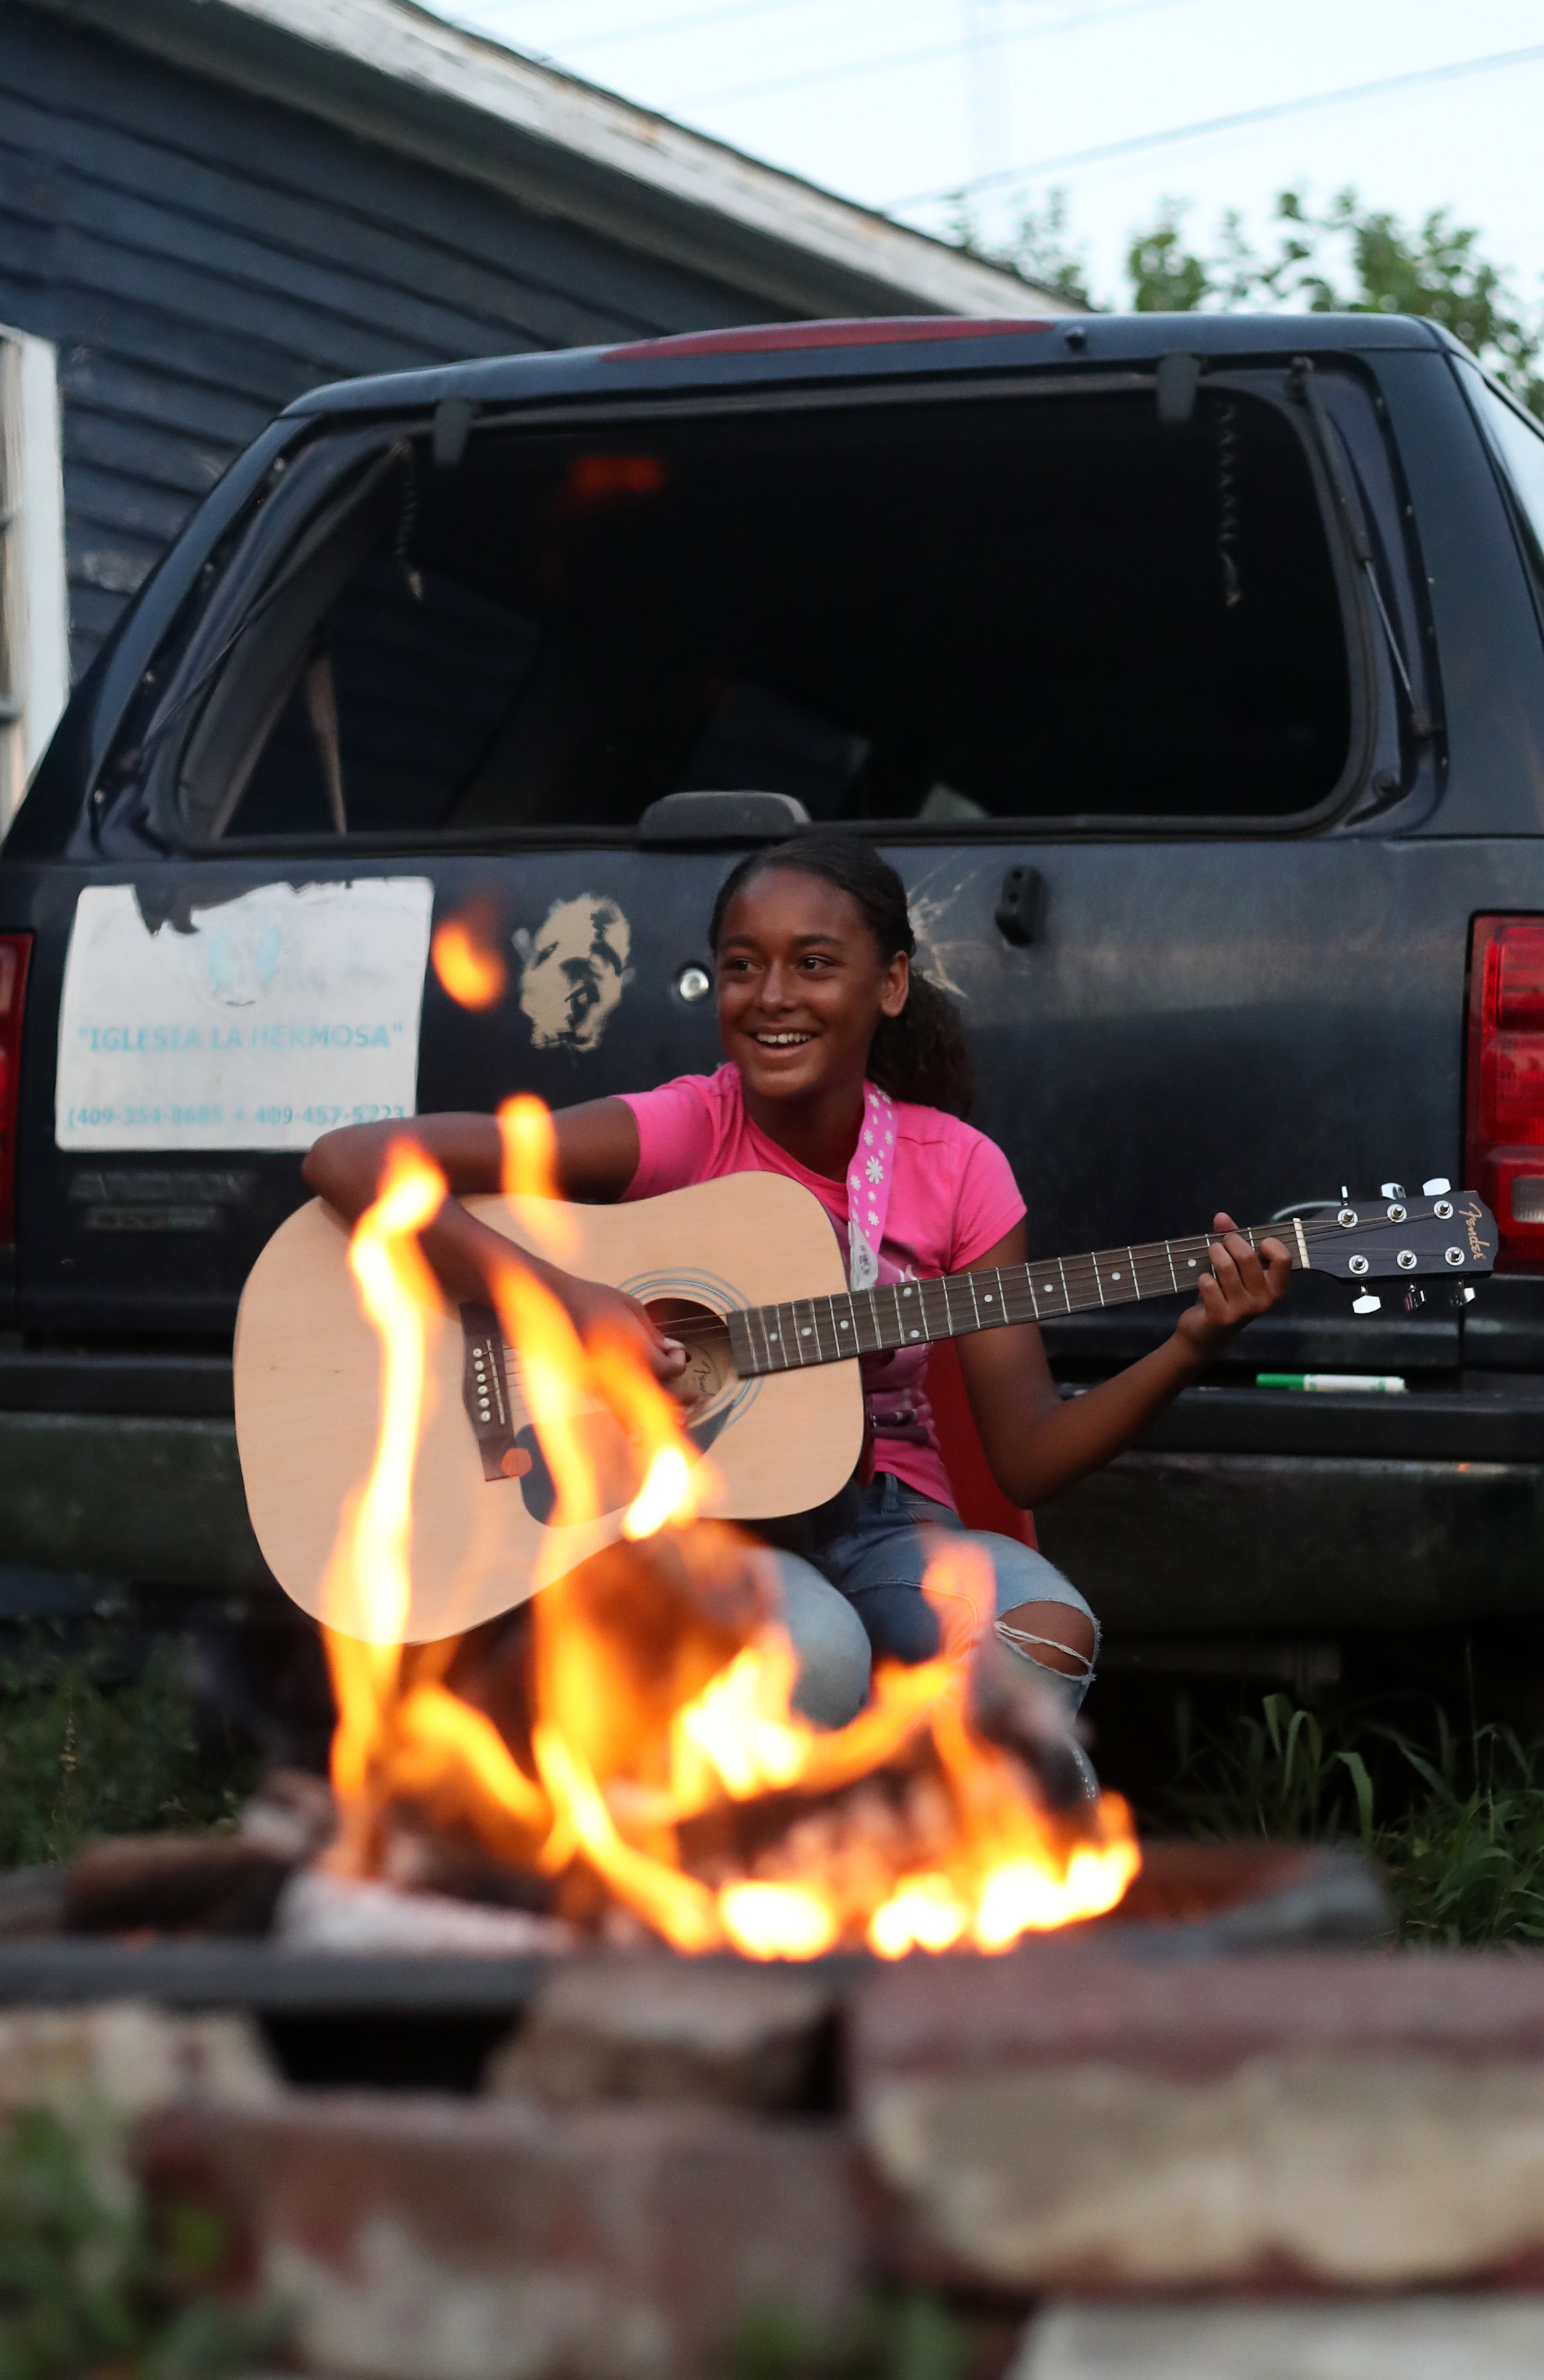 Keturah White smiles while playing the guitar at a family bonfire at home on Tuesday, June 5, 2018. Keturah often leads songs for her siblings as they sing together around the fire.